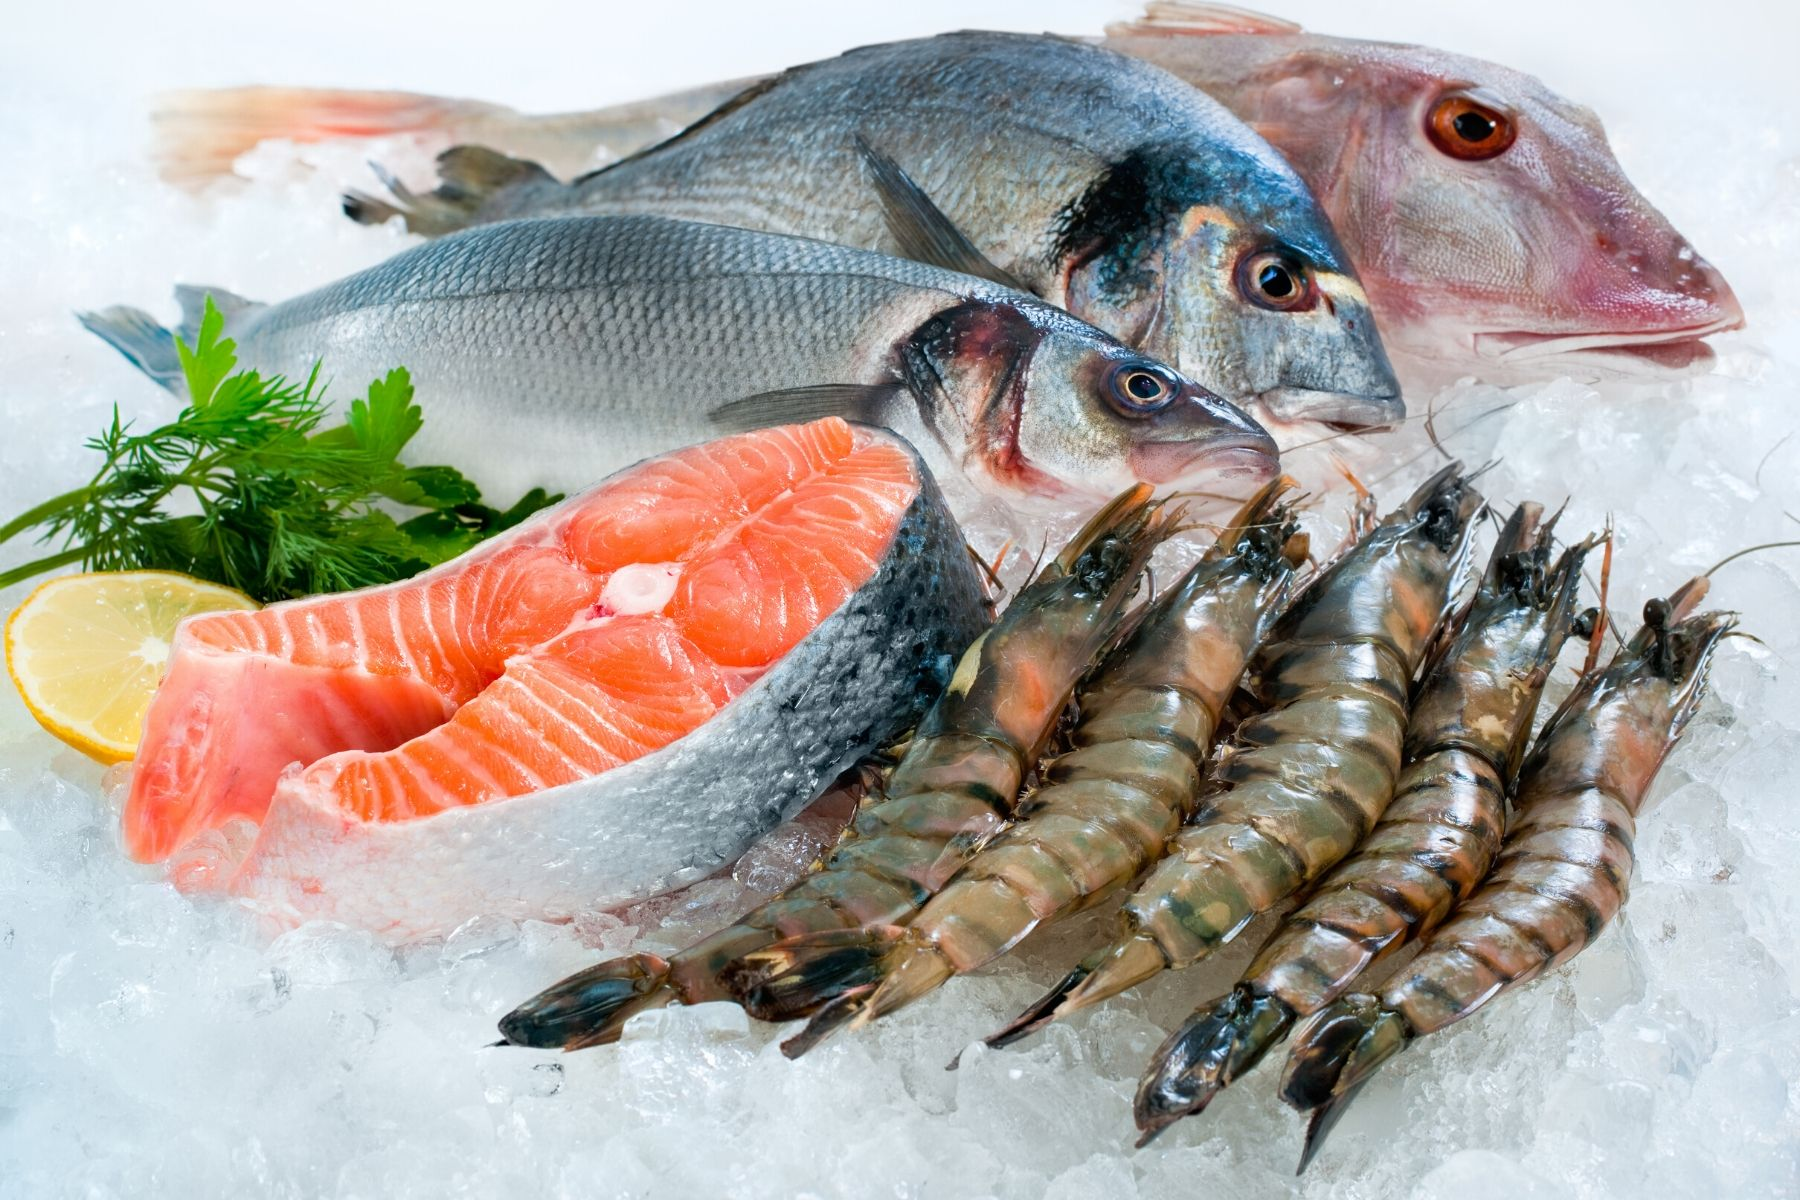 HappyFresh_How_To_Store_Foods_Properly_Seafoods